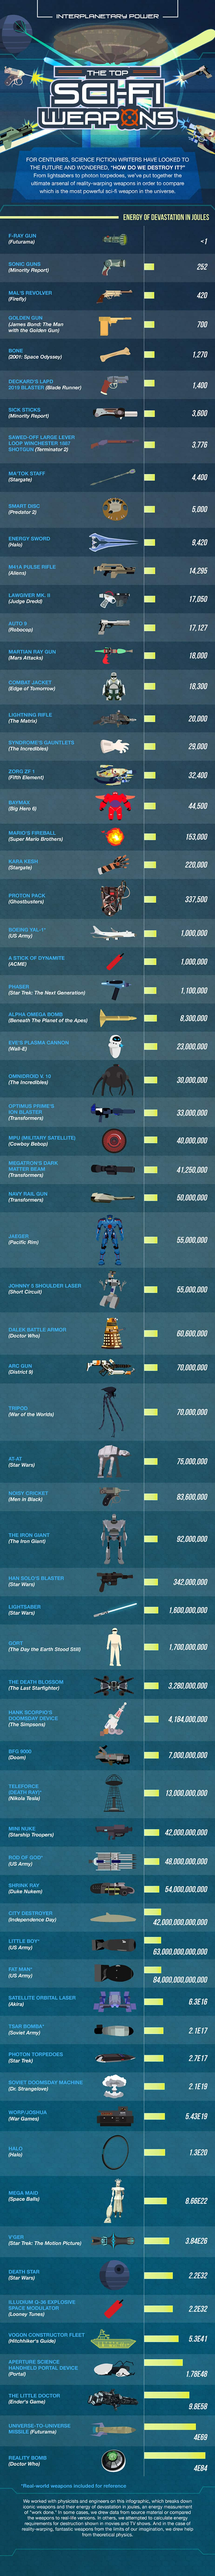 Incredible Weapons in Science-Fiction and Reality - Infographic